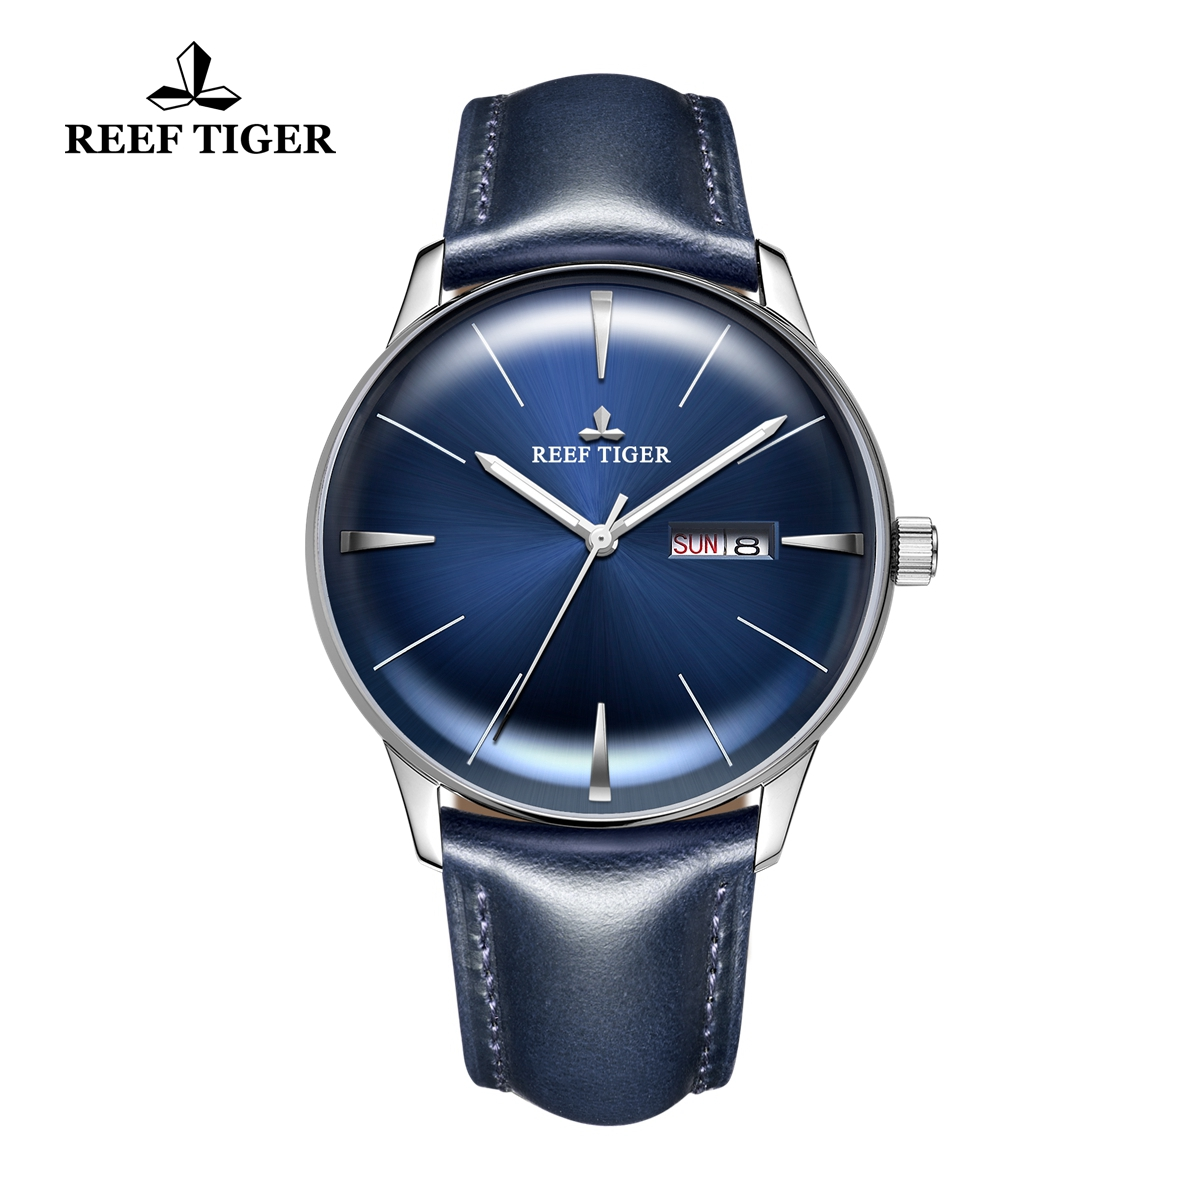 Reef Tiger Classic Heritor Automatic Watch Men's Blue Dial Leather Strap For Men Watches RGA8238-YLLH